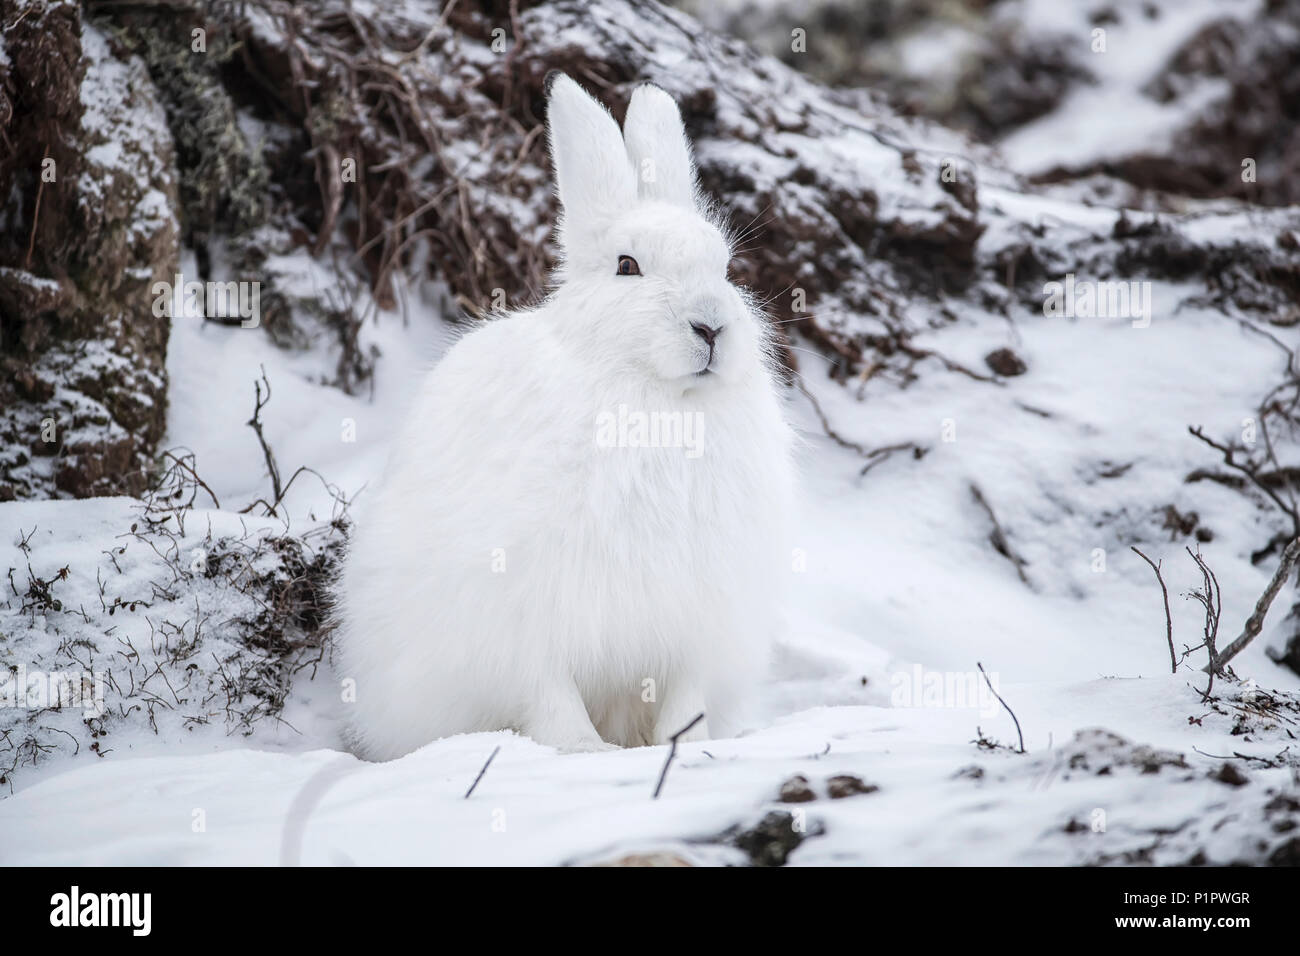 Lièvre arctique (Lepus arcticus) dans la neige ; Churchill, Manitoba, Canada Photo Stock